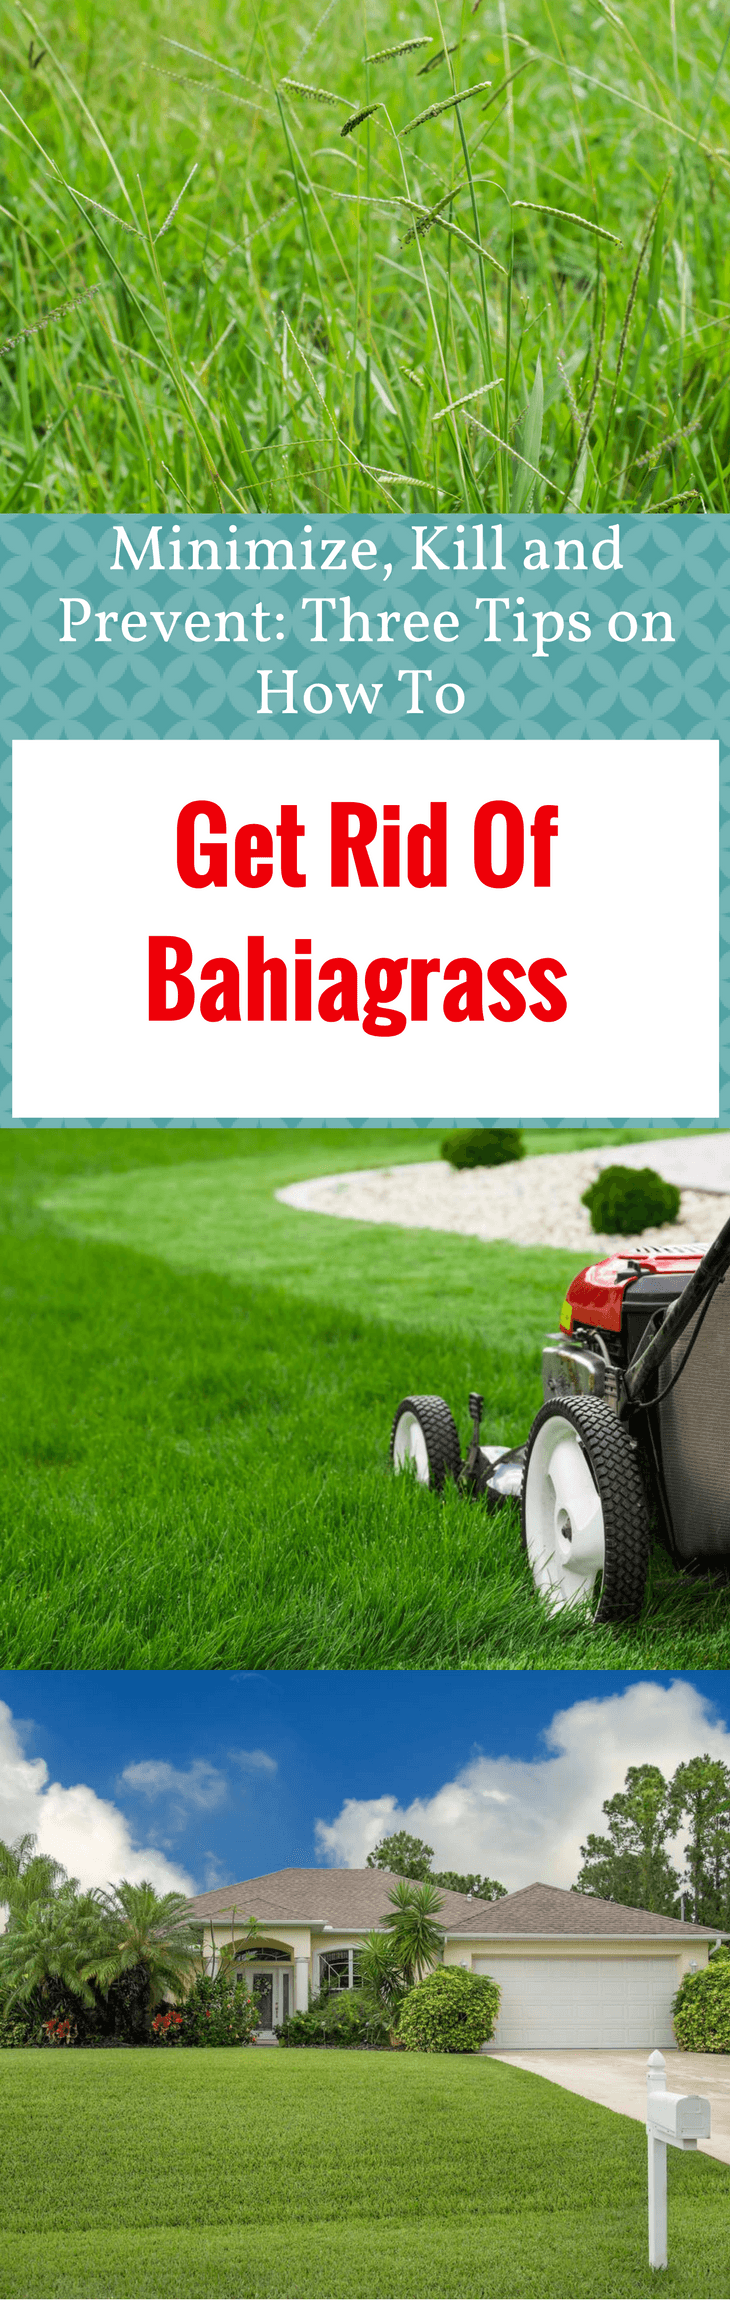 Get Rid Of Bahiagrass 1